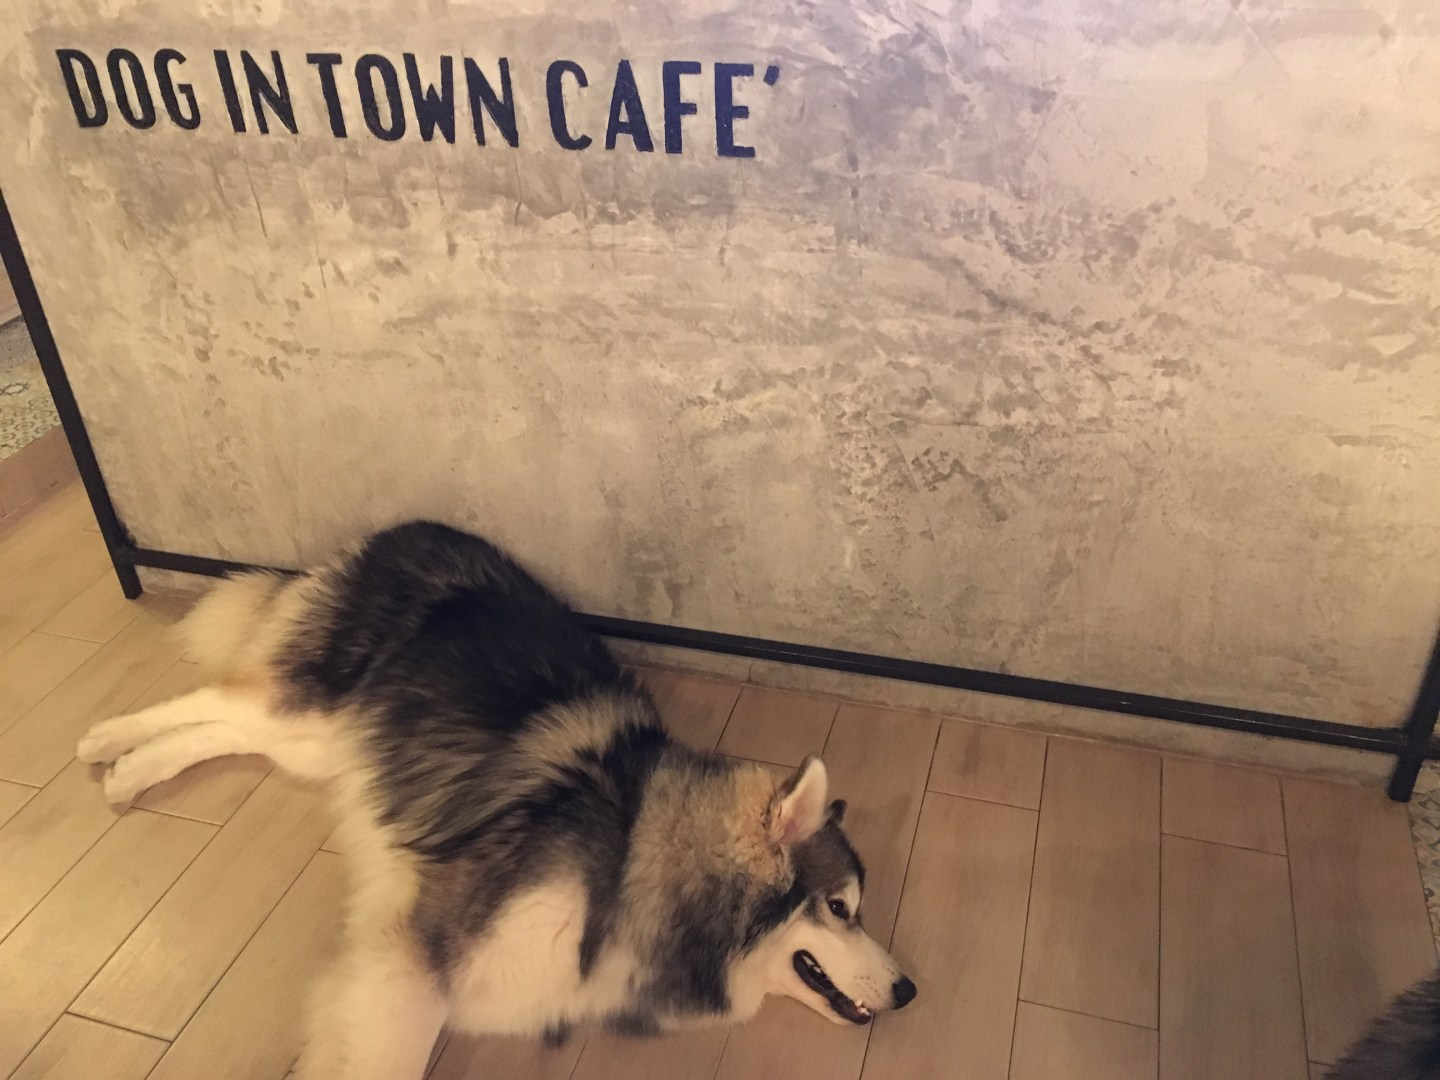 Dog In Town